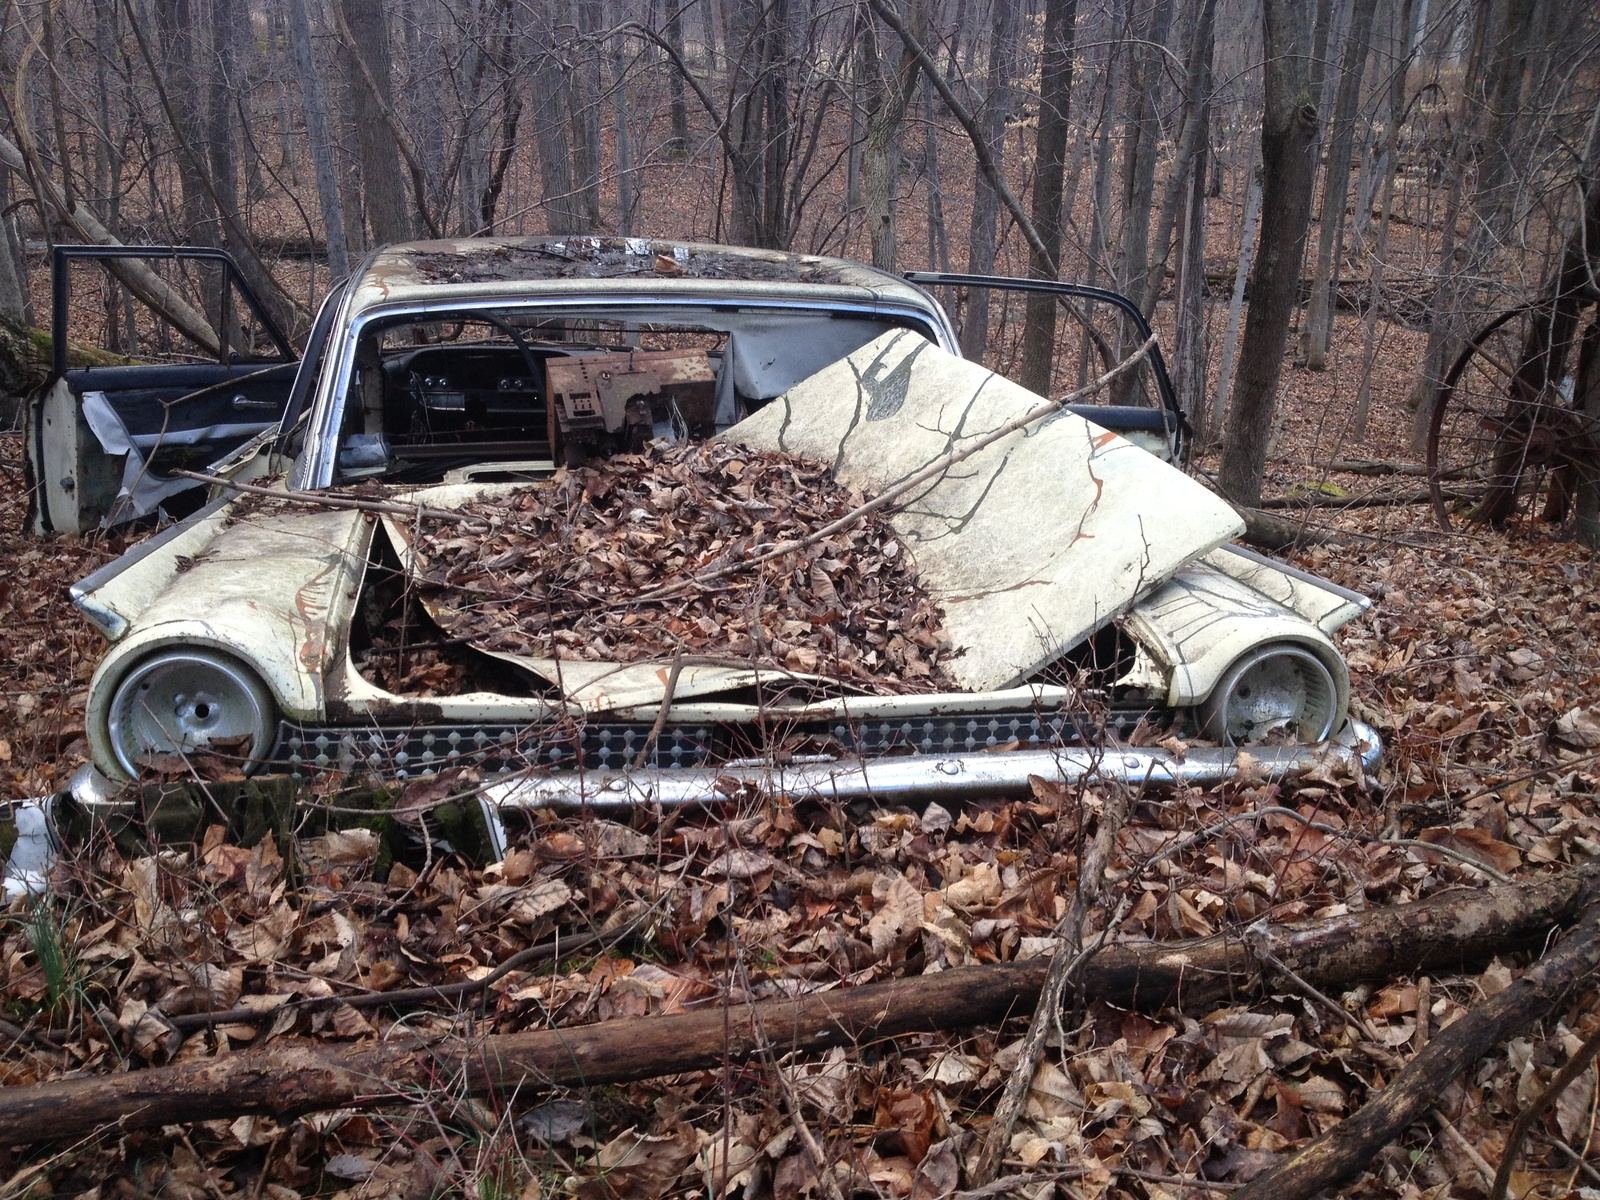 1963 ford galaxie parts ebay - There Are Like No Parts On The Car Is It Possible To Refurbish It It Is A 1959 1963 Ford Galaxie I Believe Thanks